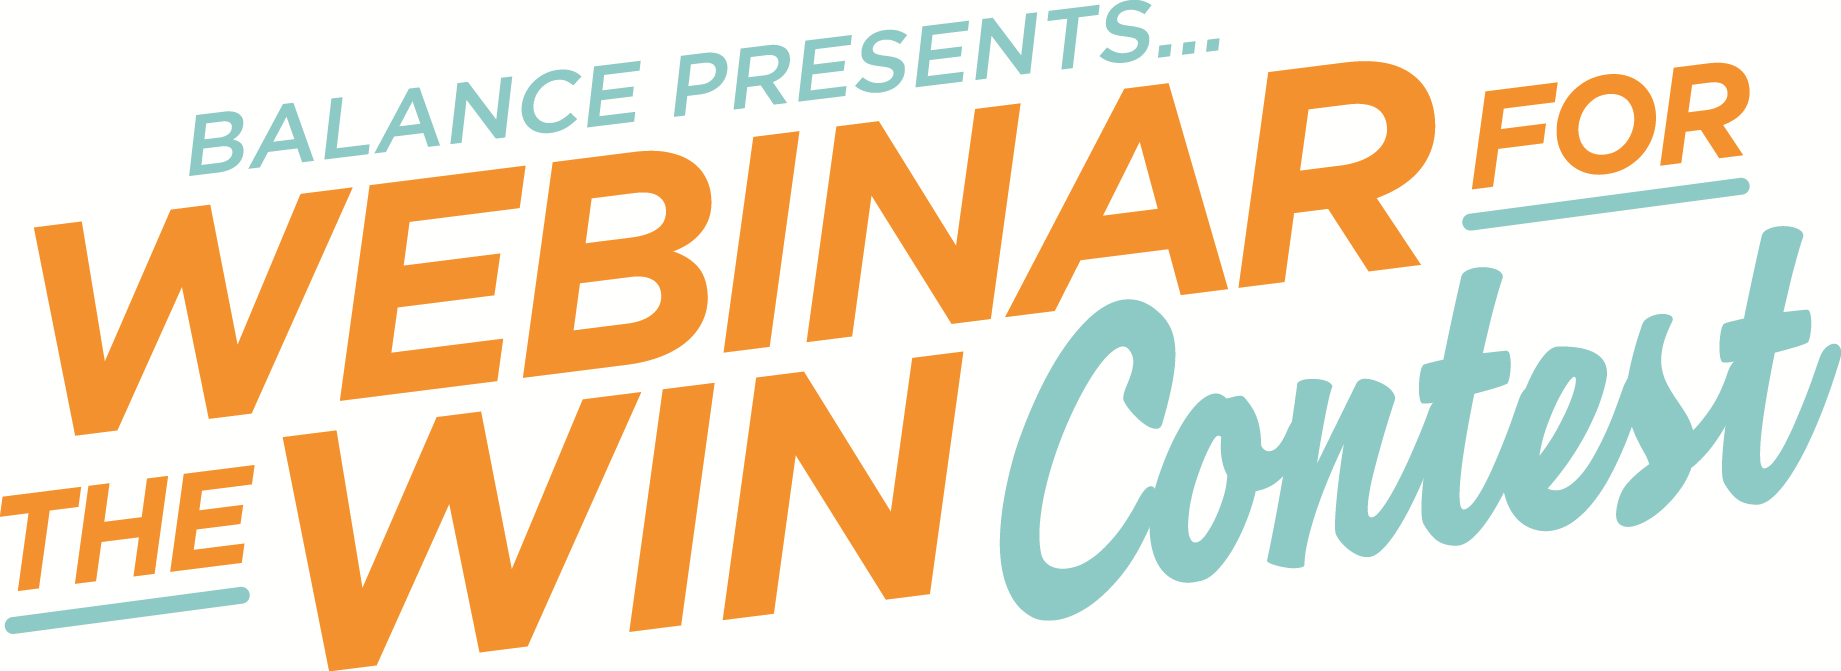 "BALANCE presents... The ""Webinar for the Win"" Contest!"